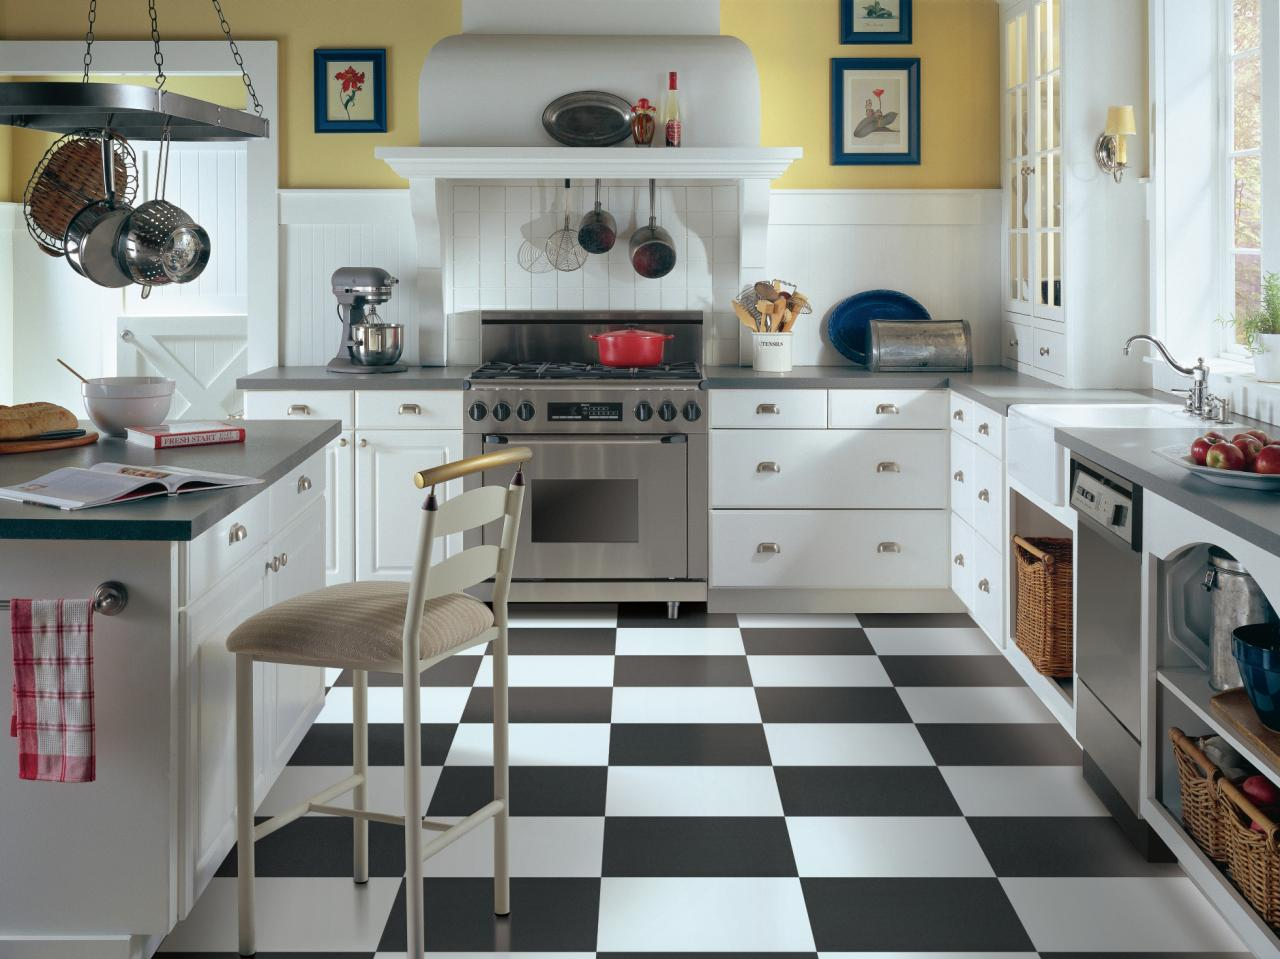 Kitchen Flooring-Palm Beach Kitchen & Bath Remodeling-We do kitchen & bath remodeling, home renovations, custom lighting, custom cabinet installation, cabinet refacing and refinishing, outdoor kitchens, commercial kitchen, countertops, and more